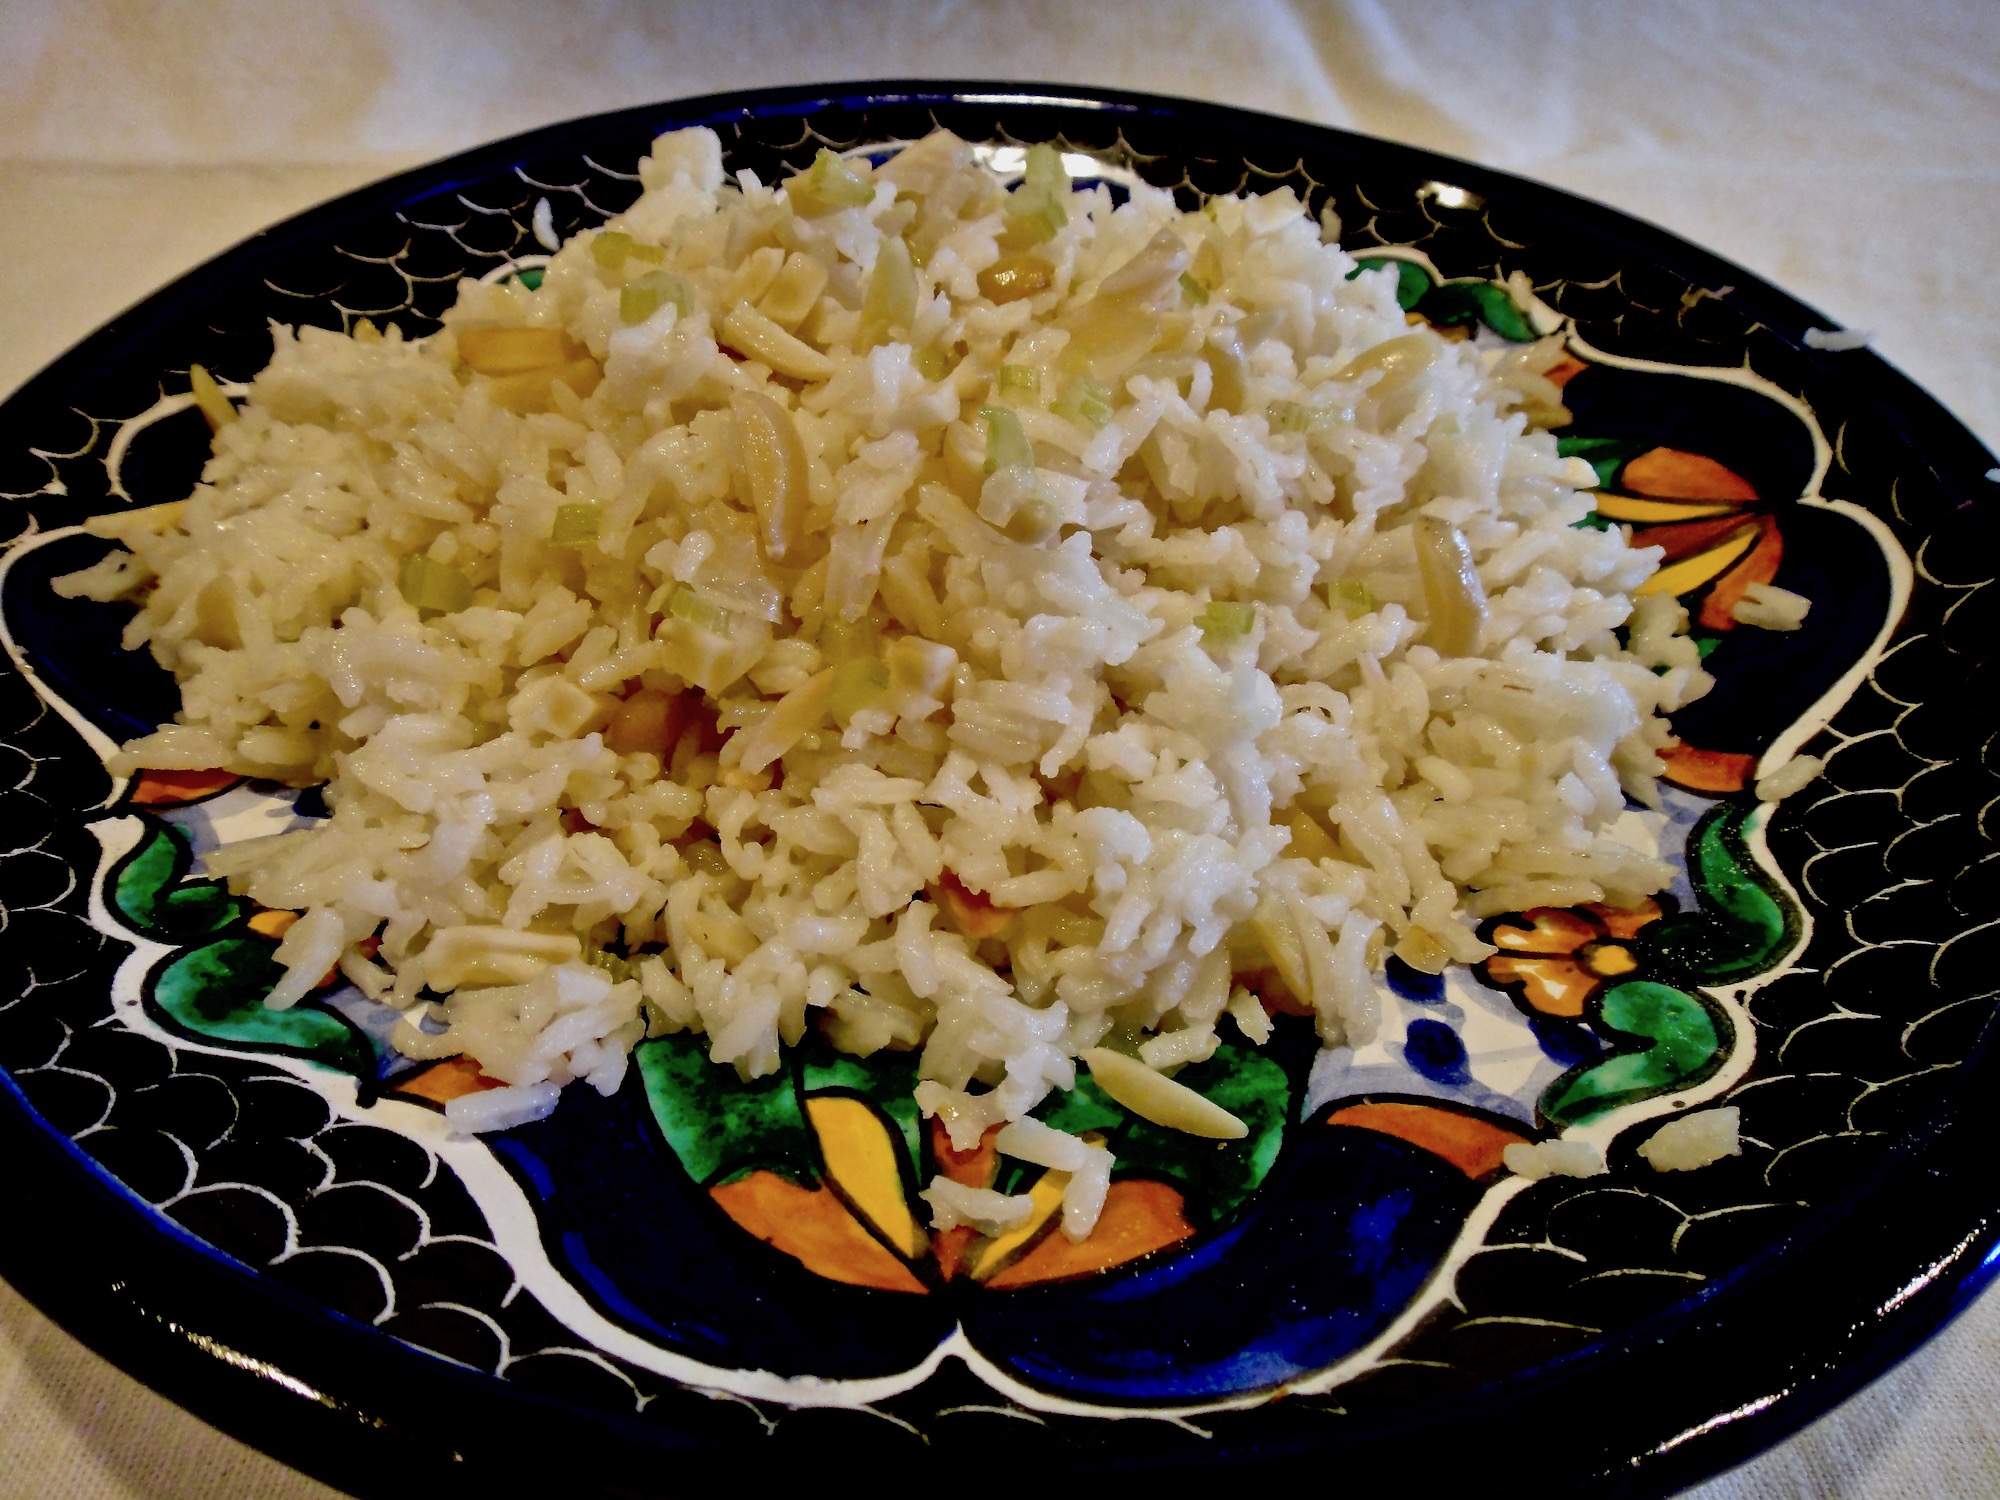 Arroz Con Almendras – Almond Rice Adds Elegant Crunch